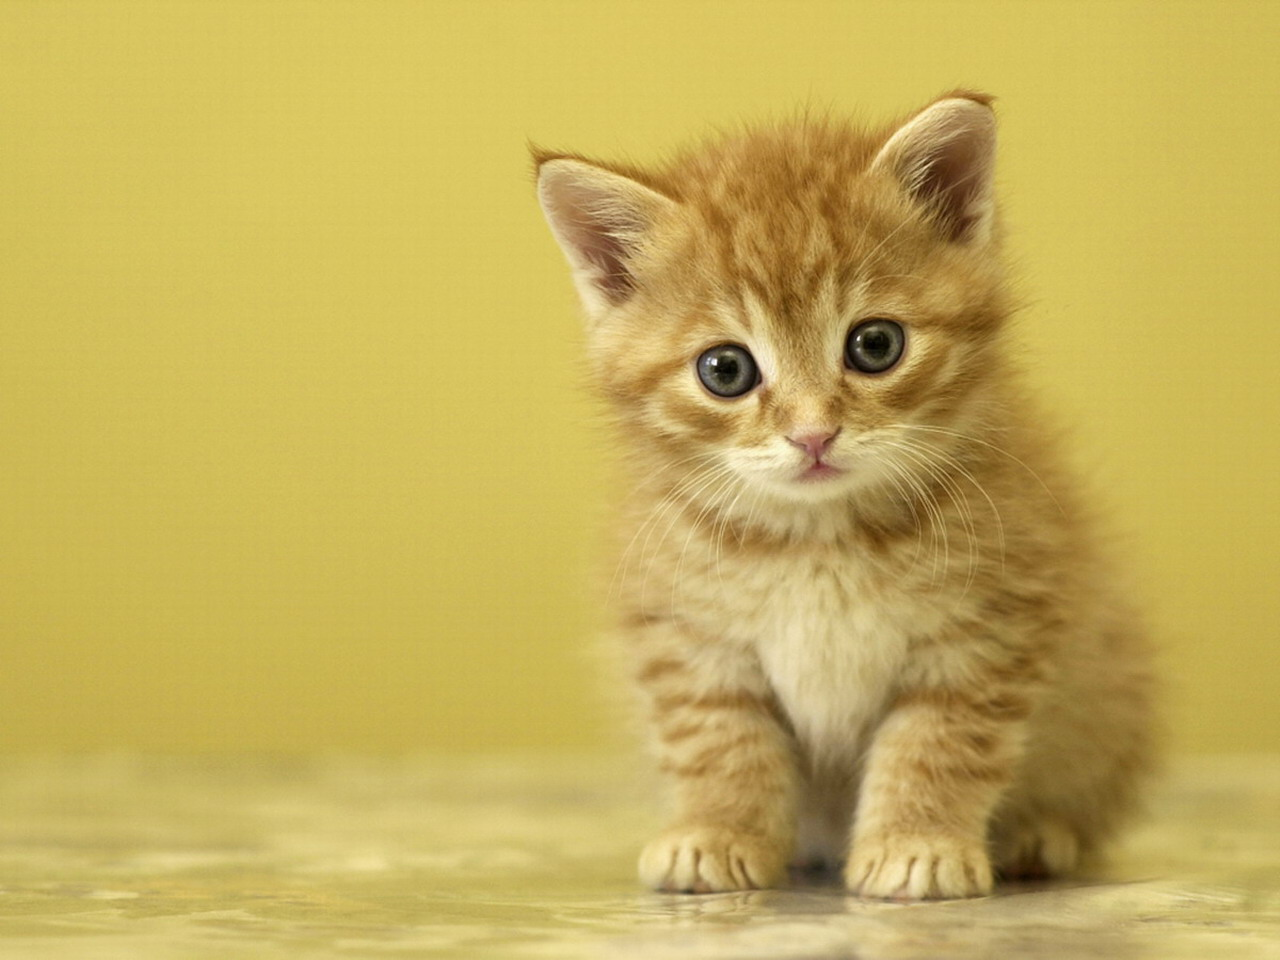 Cute Baby Cats Wallpapers 002 – Adorable Wallpapers